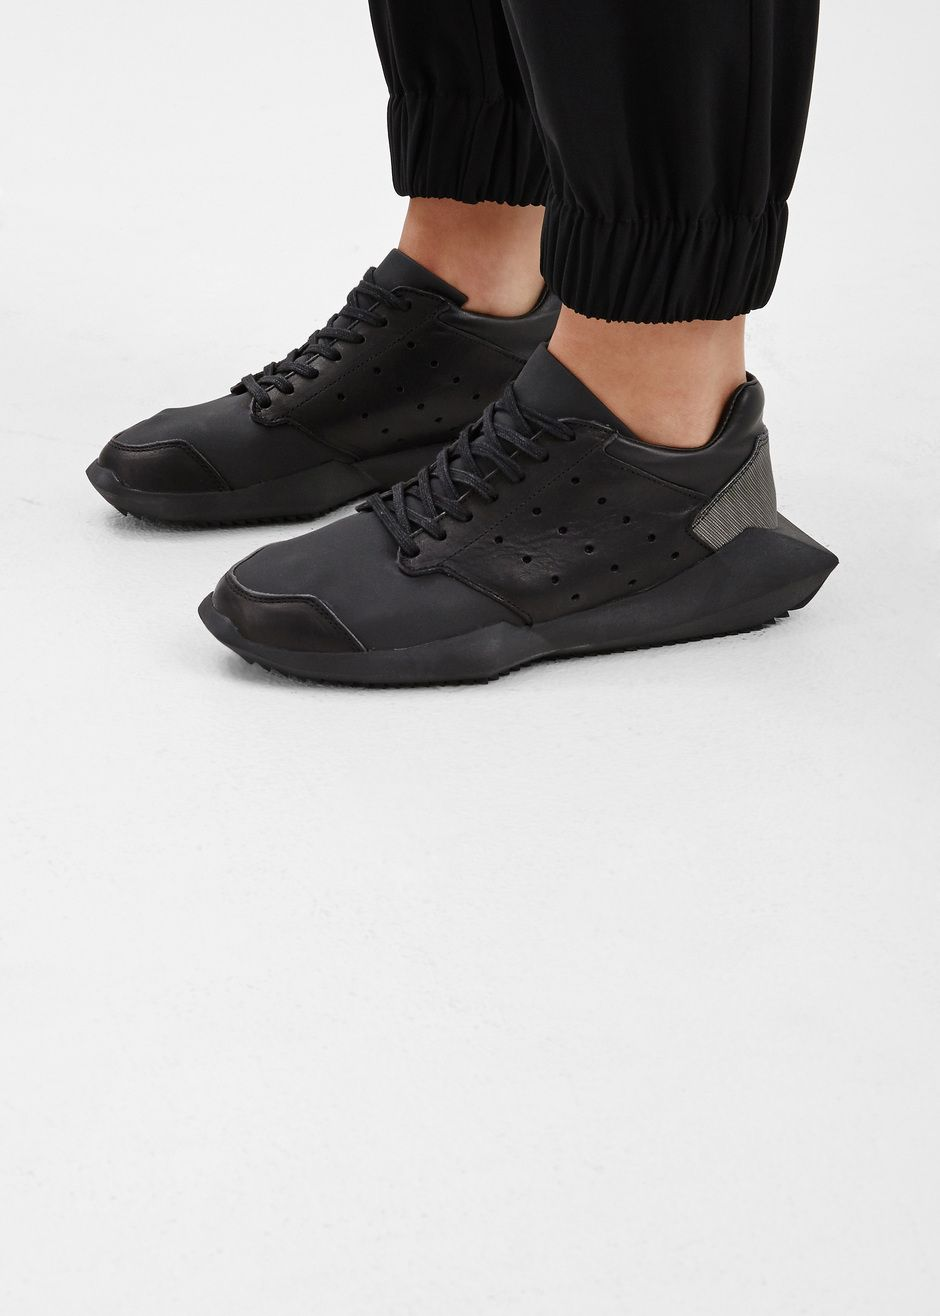 Purveyor of beautifully designed and thoughtfully curated fashion and  objects. Rick Owens SneakersRunnersAdidasFootwearObjectsShoeJoggersShoes Zapatos